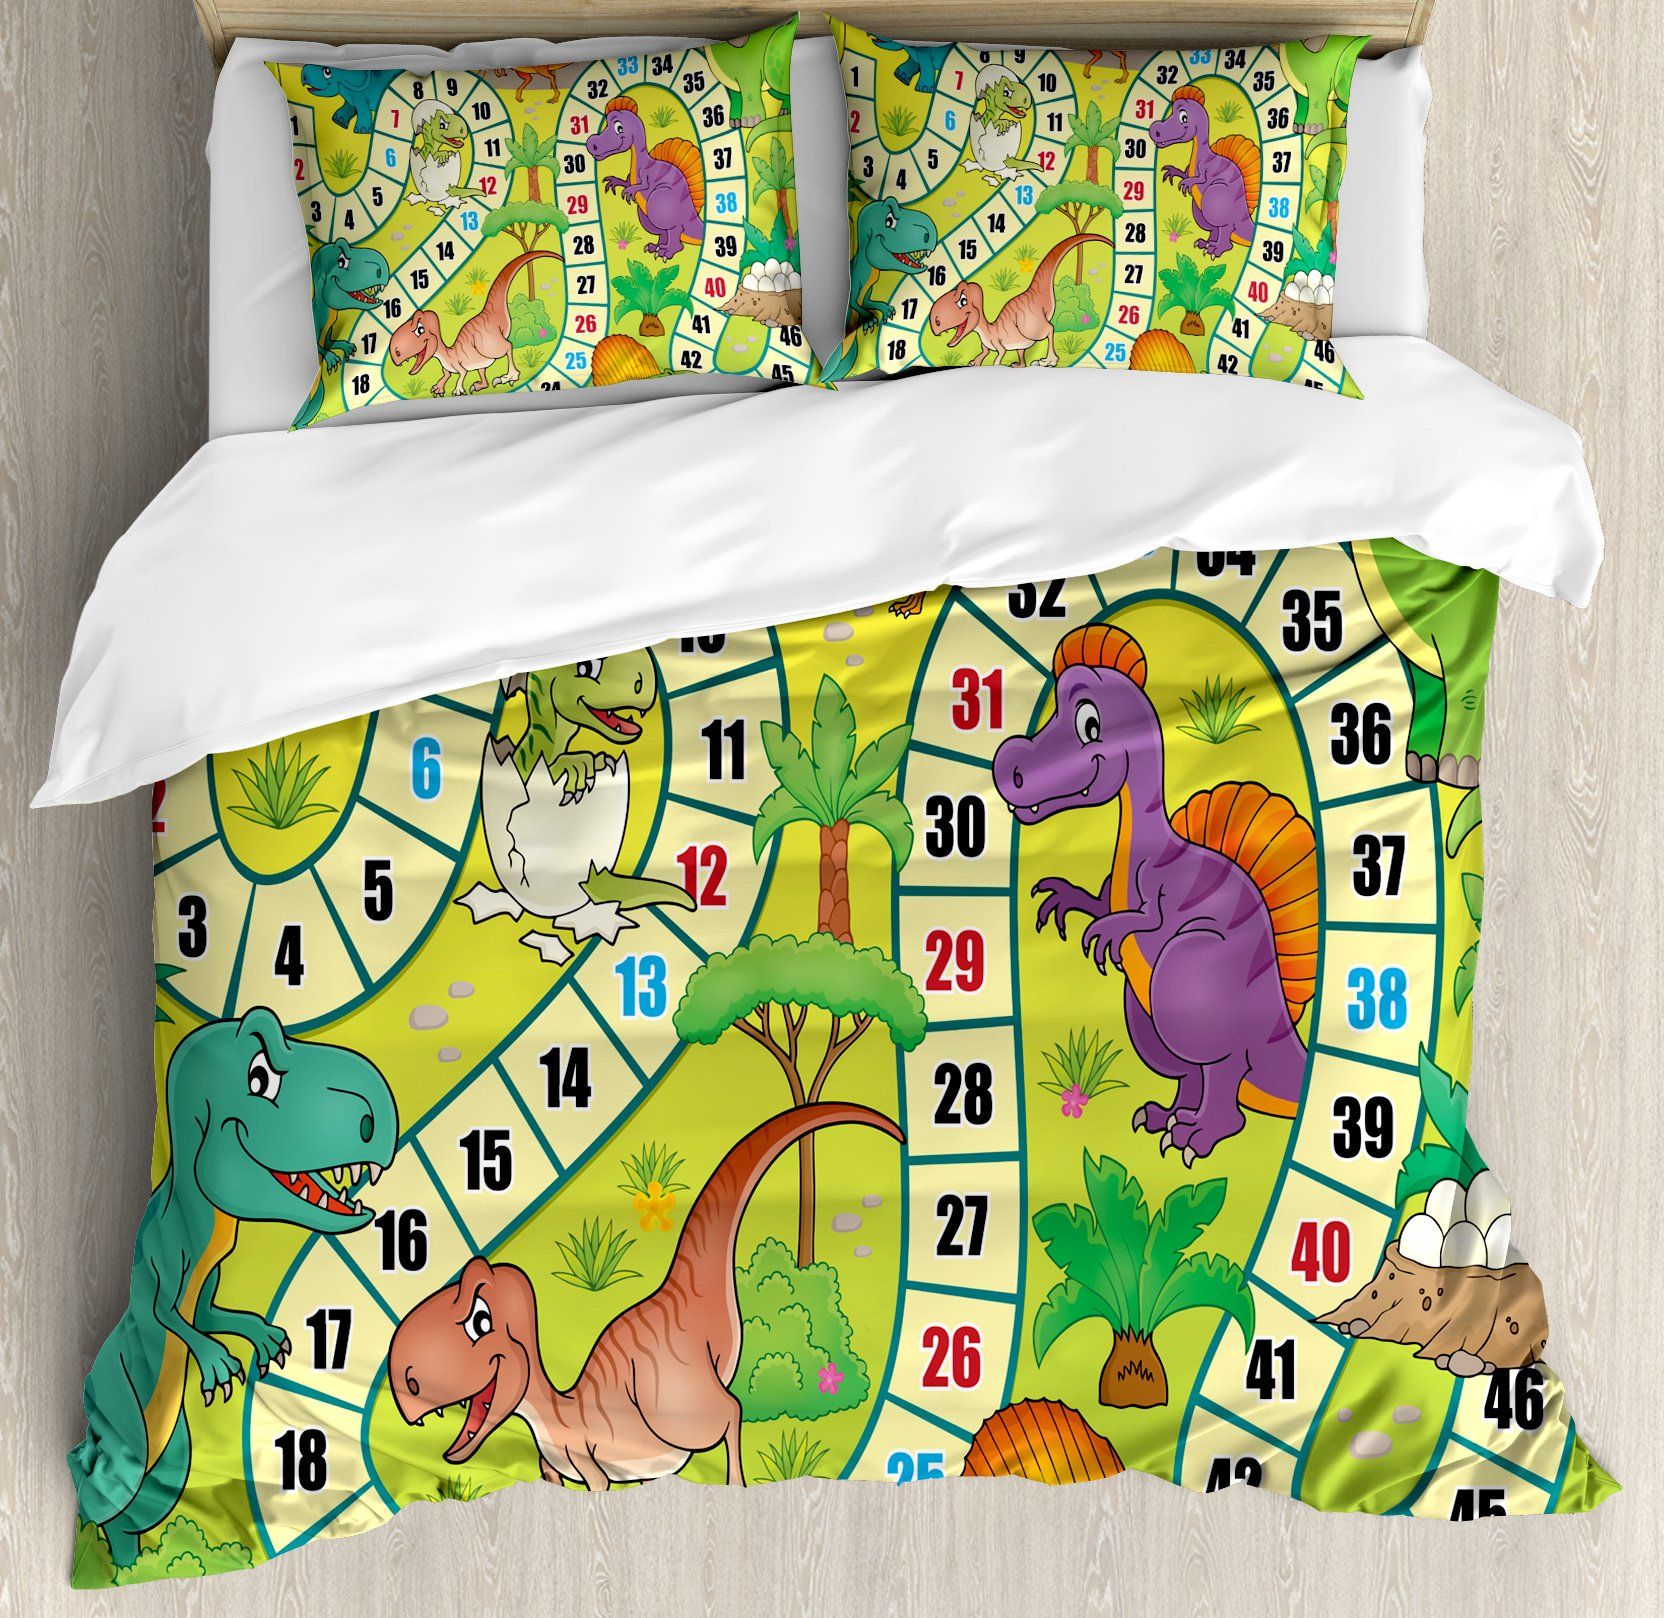 Board Game Queen Size Duvet Cover Set by Ambesonne, Cute Dinosaurs Jungle Numeral Wavy Line Prehistoric Fauna Wildlife Composition, Decorative 3 Piece Bedding Set with 2 Pillow Shams, Multicolor